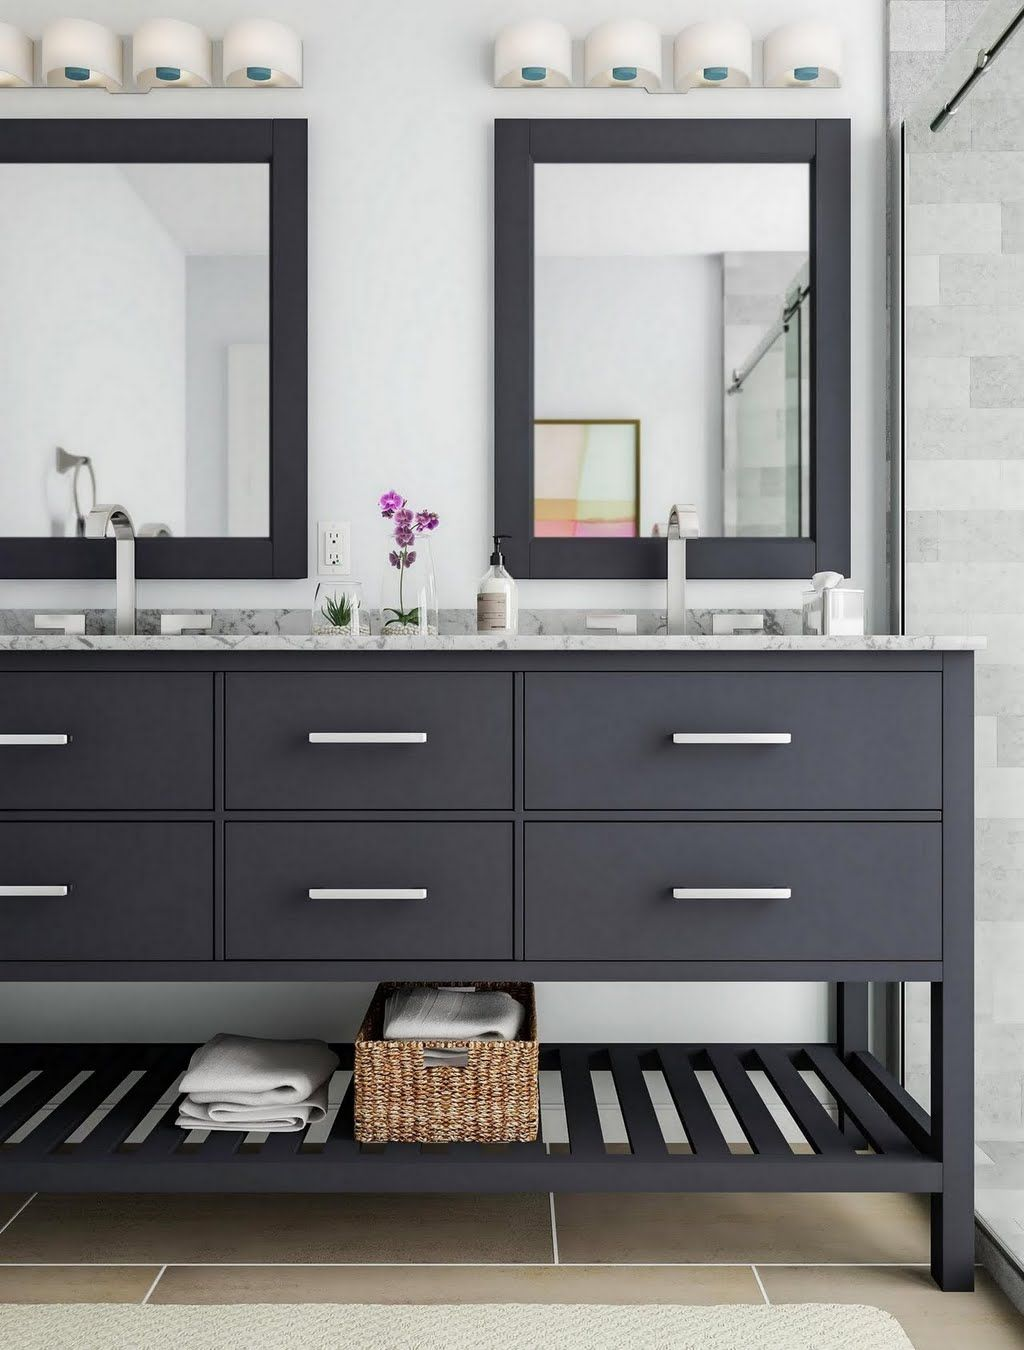 Shop our Bathroom Department to customize your OpenShelf